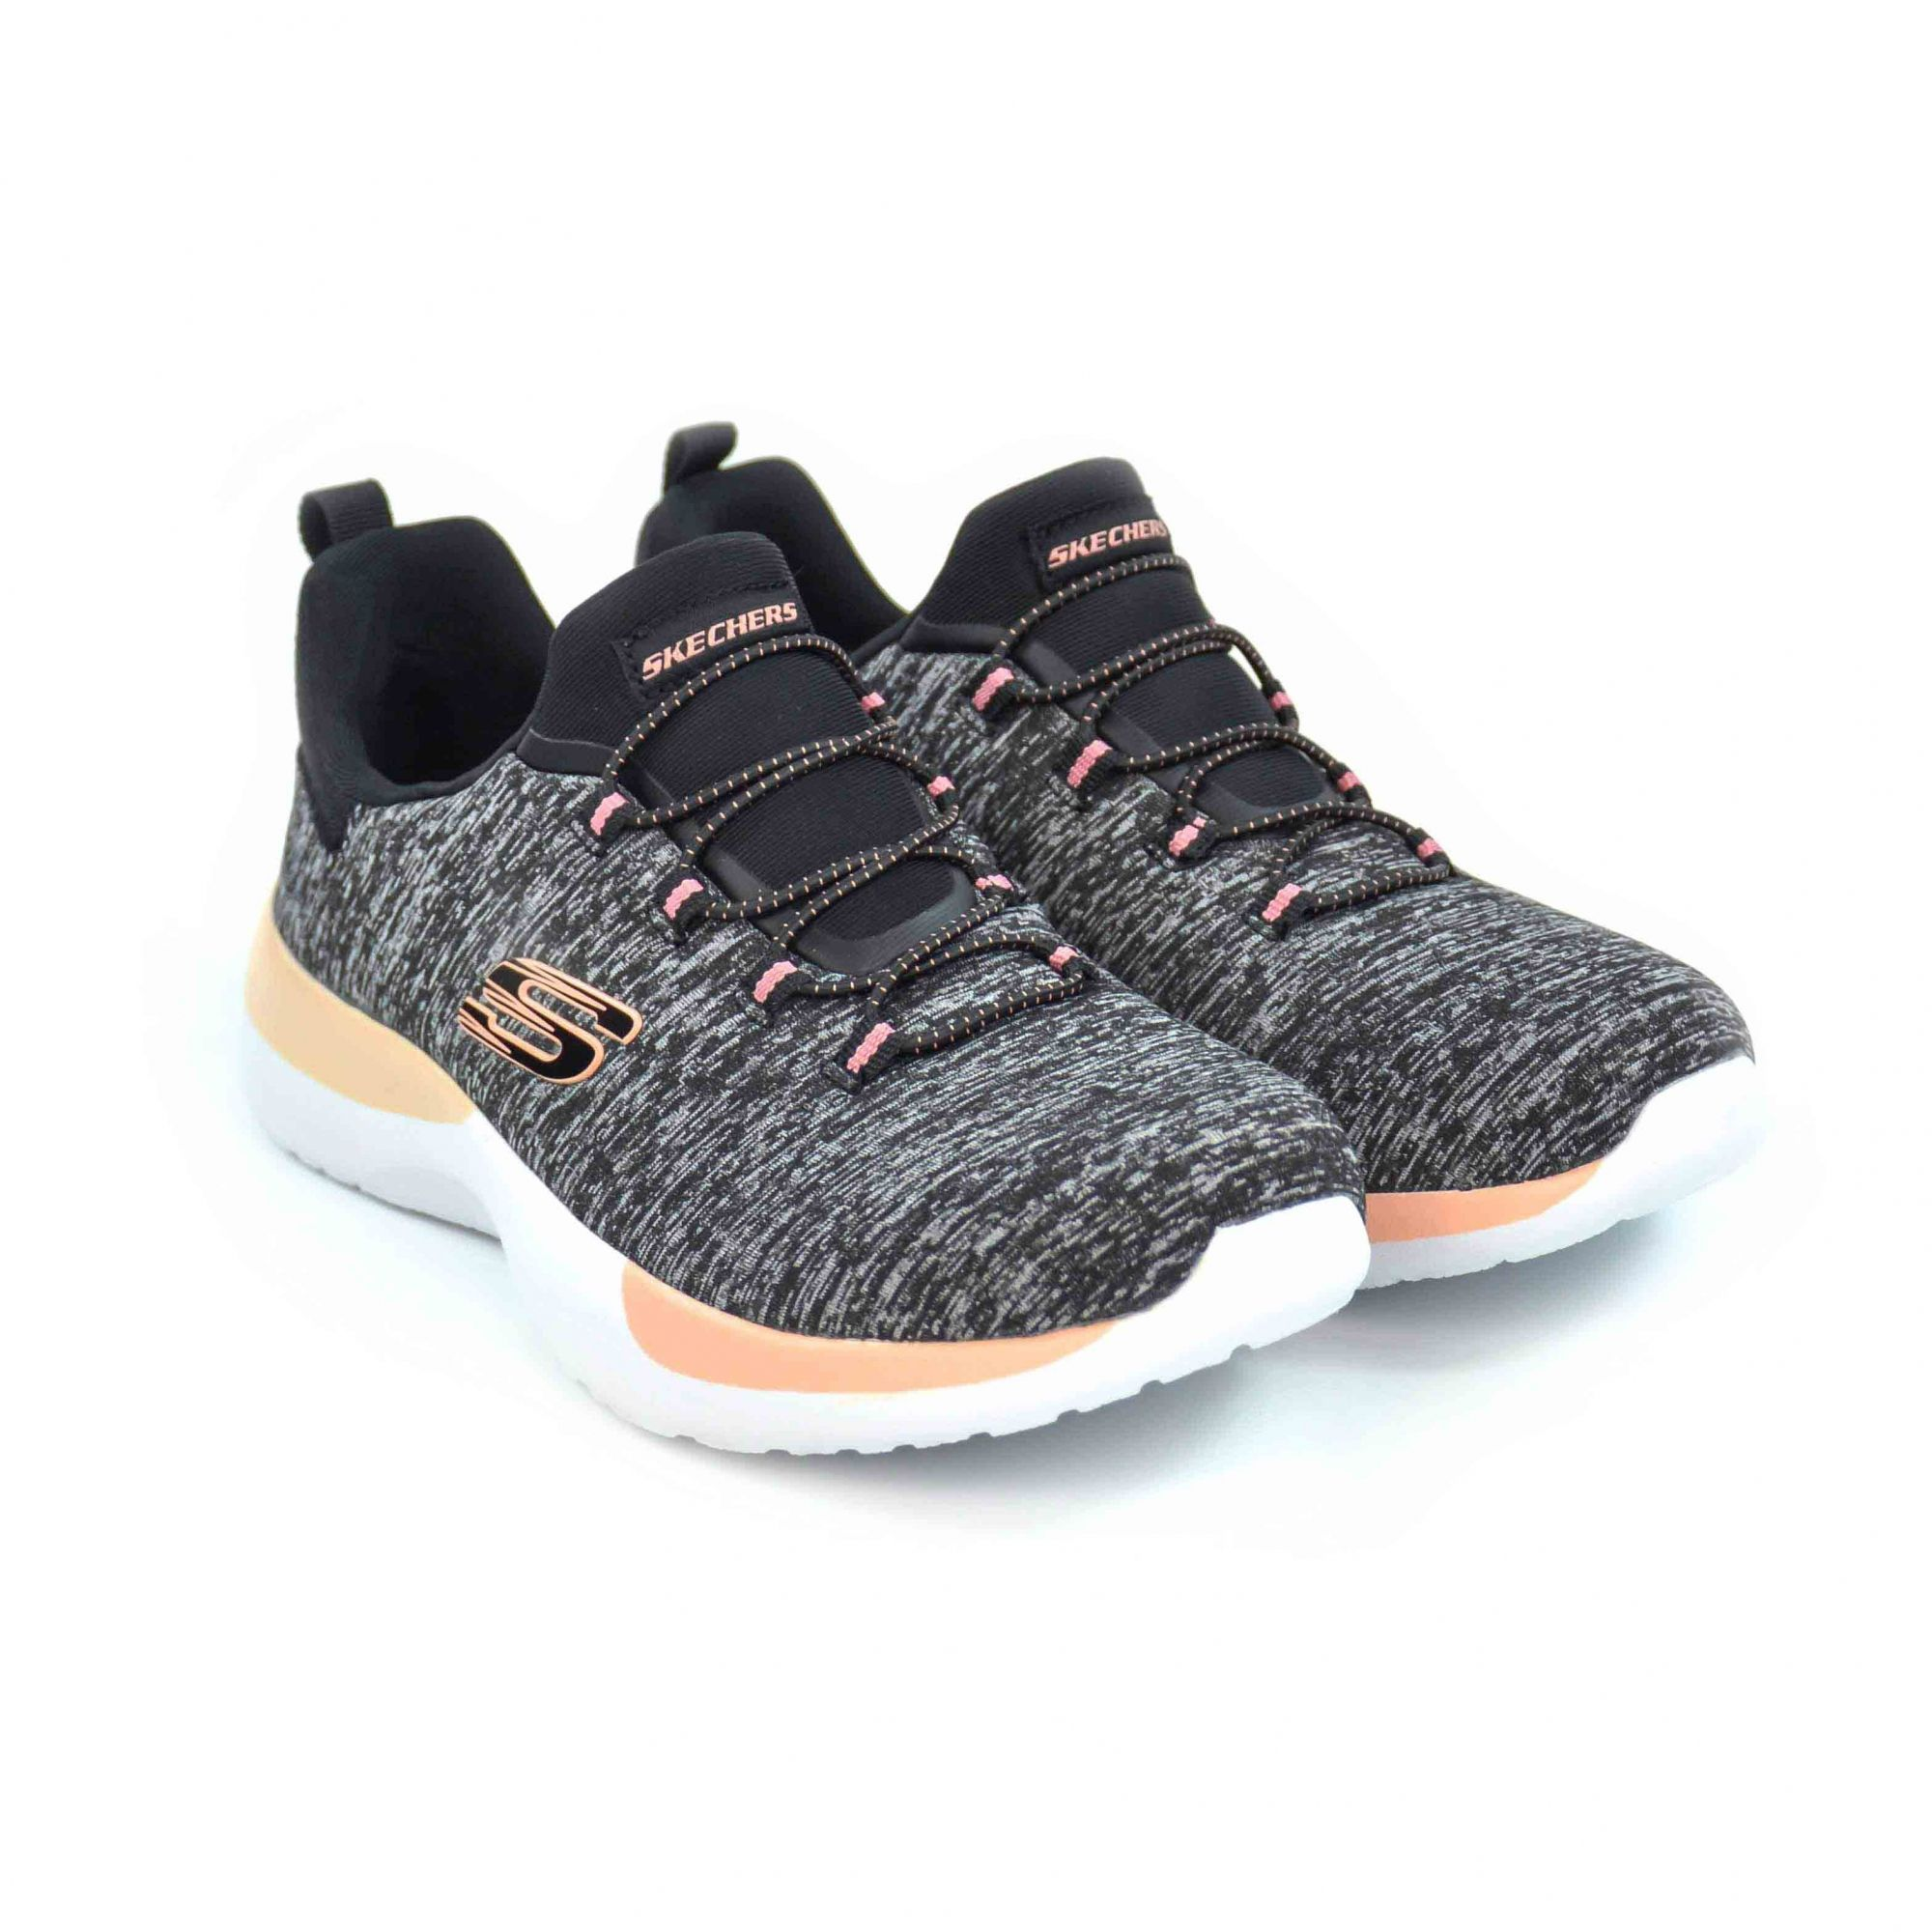 TENIS FEM DYNAMIGHT BREAKTHROUGH MESCLA SKECHERS 18291